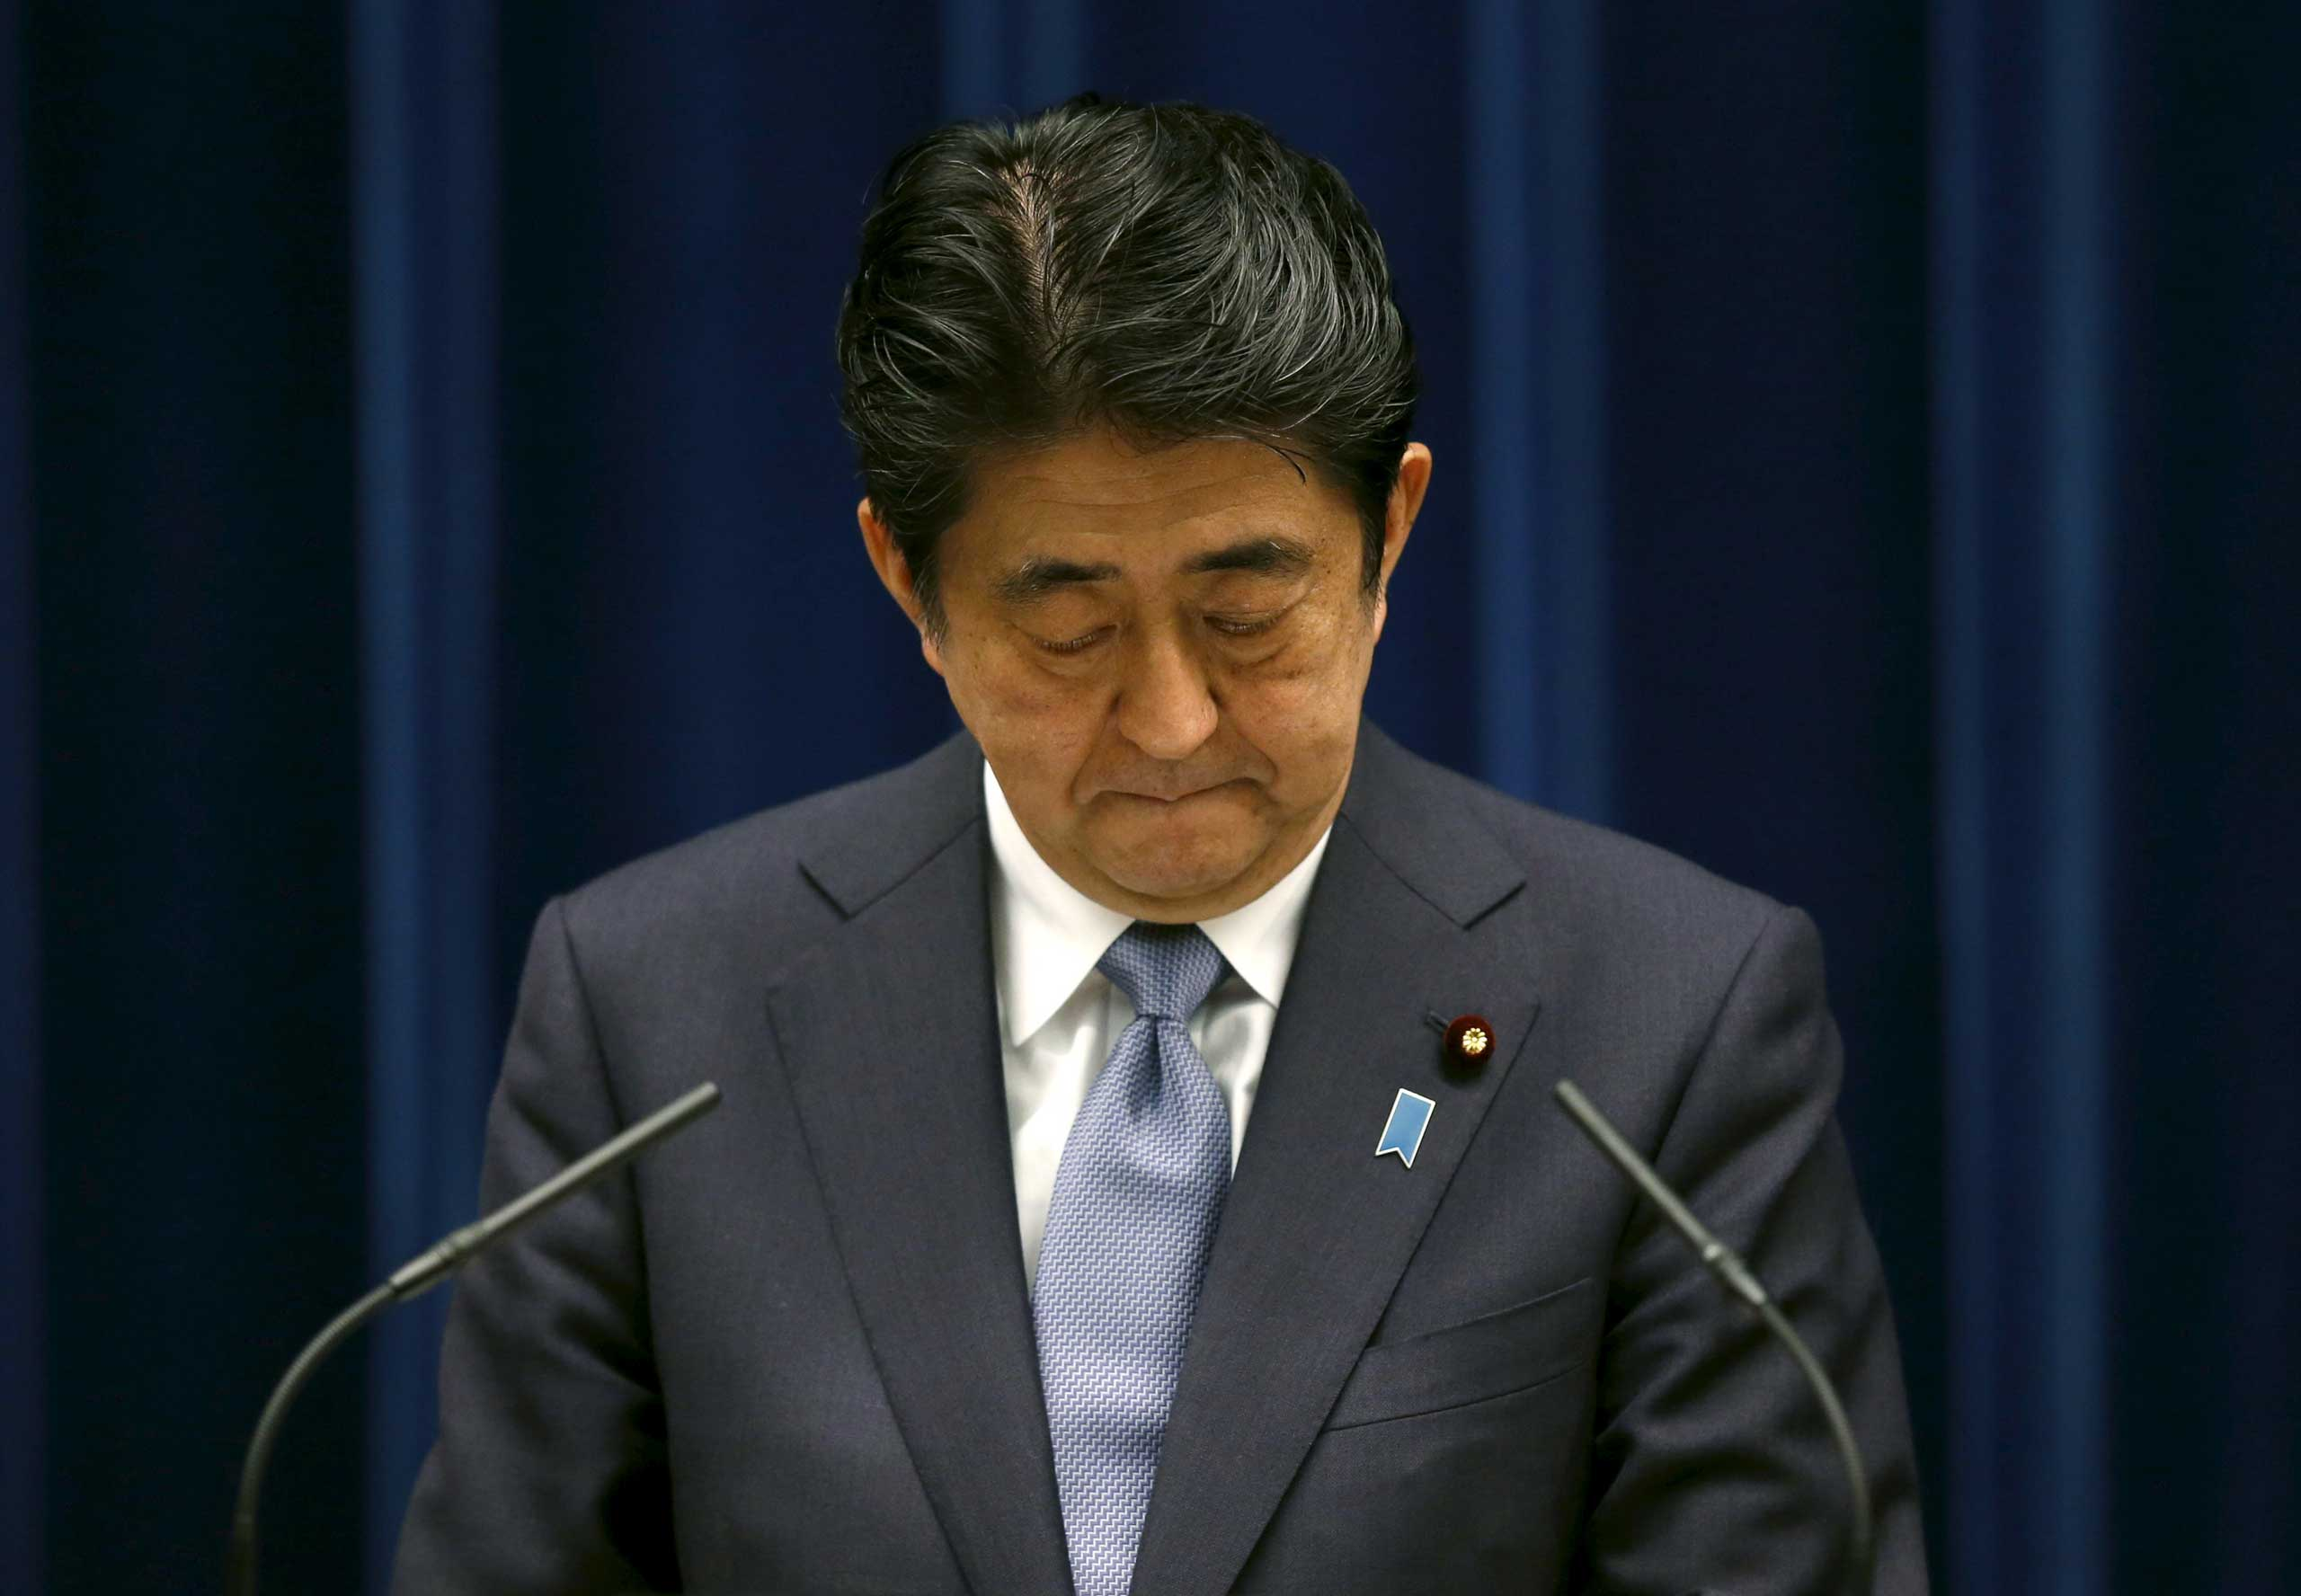 Japan's Prime Minister Shinzo Abe attends a news conference to deliver a statement marking the 70th anniversary of World War Two's end, at his official residence in Tokyo Aug. 14, 2015.